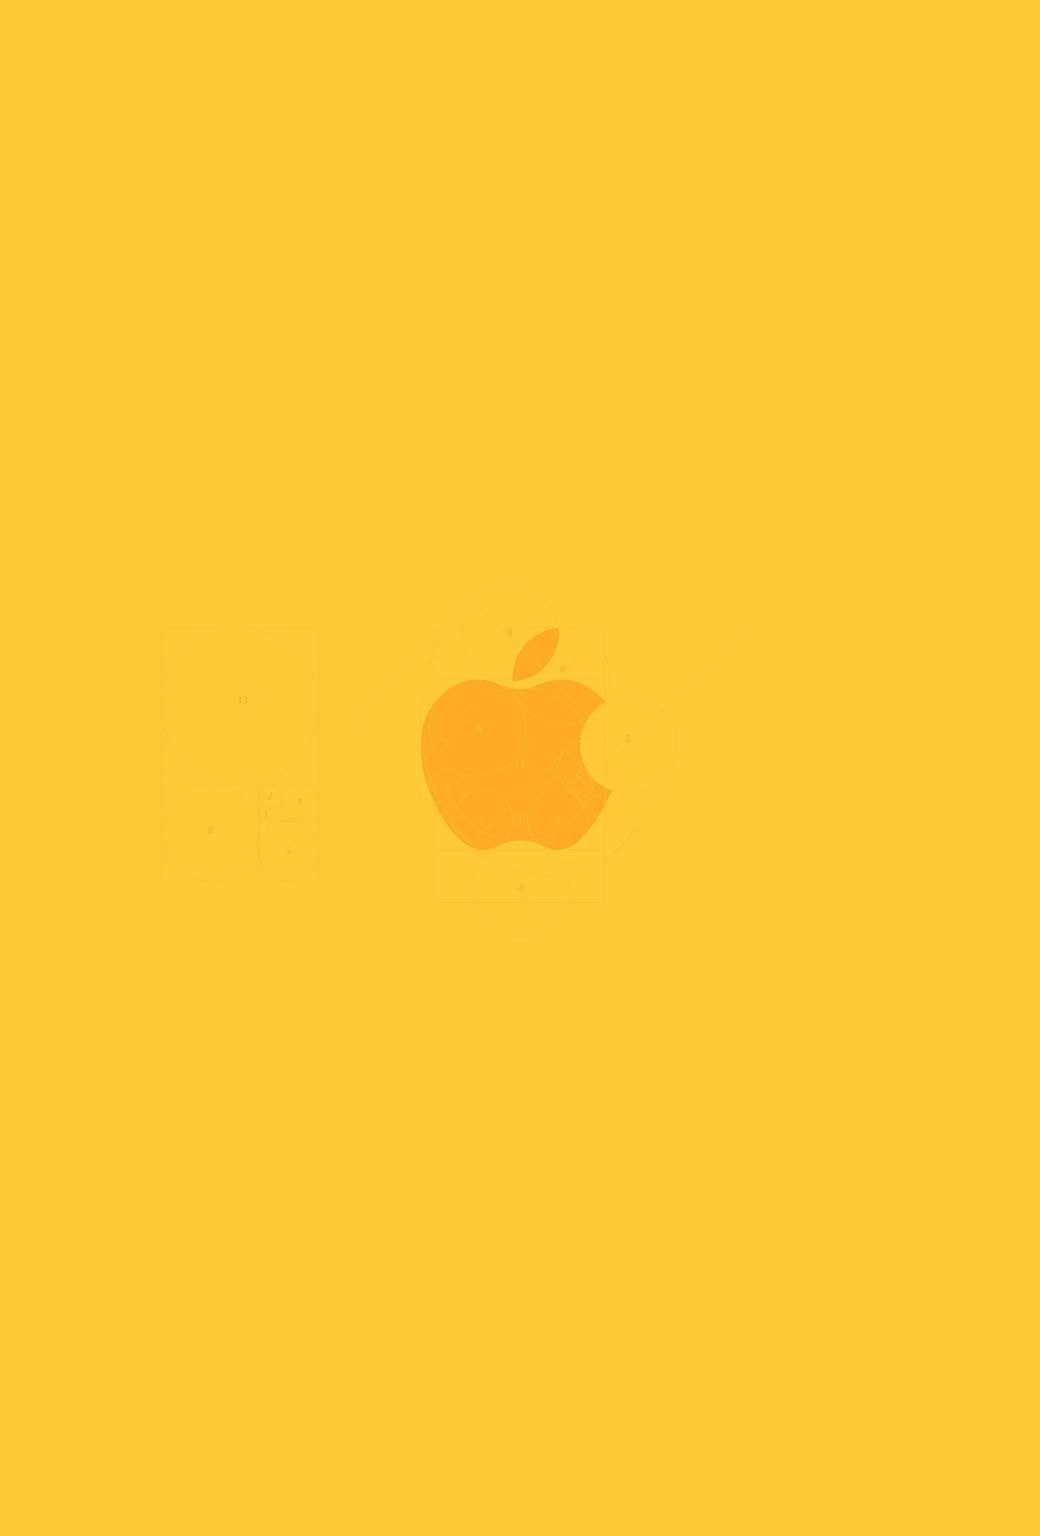 yellow wallpaper for iphone bing images iphone pinterest